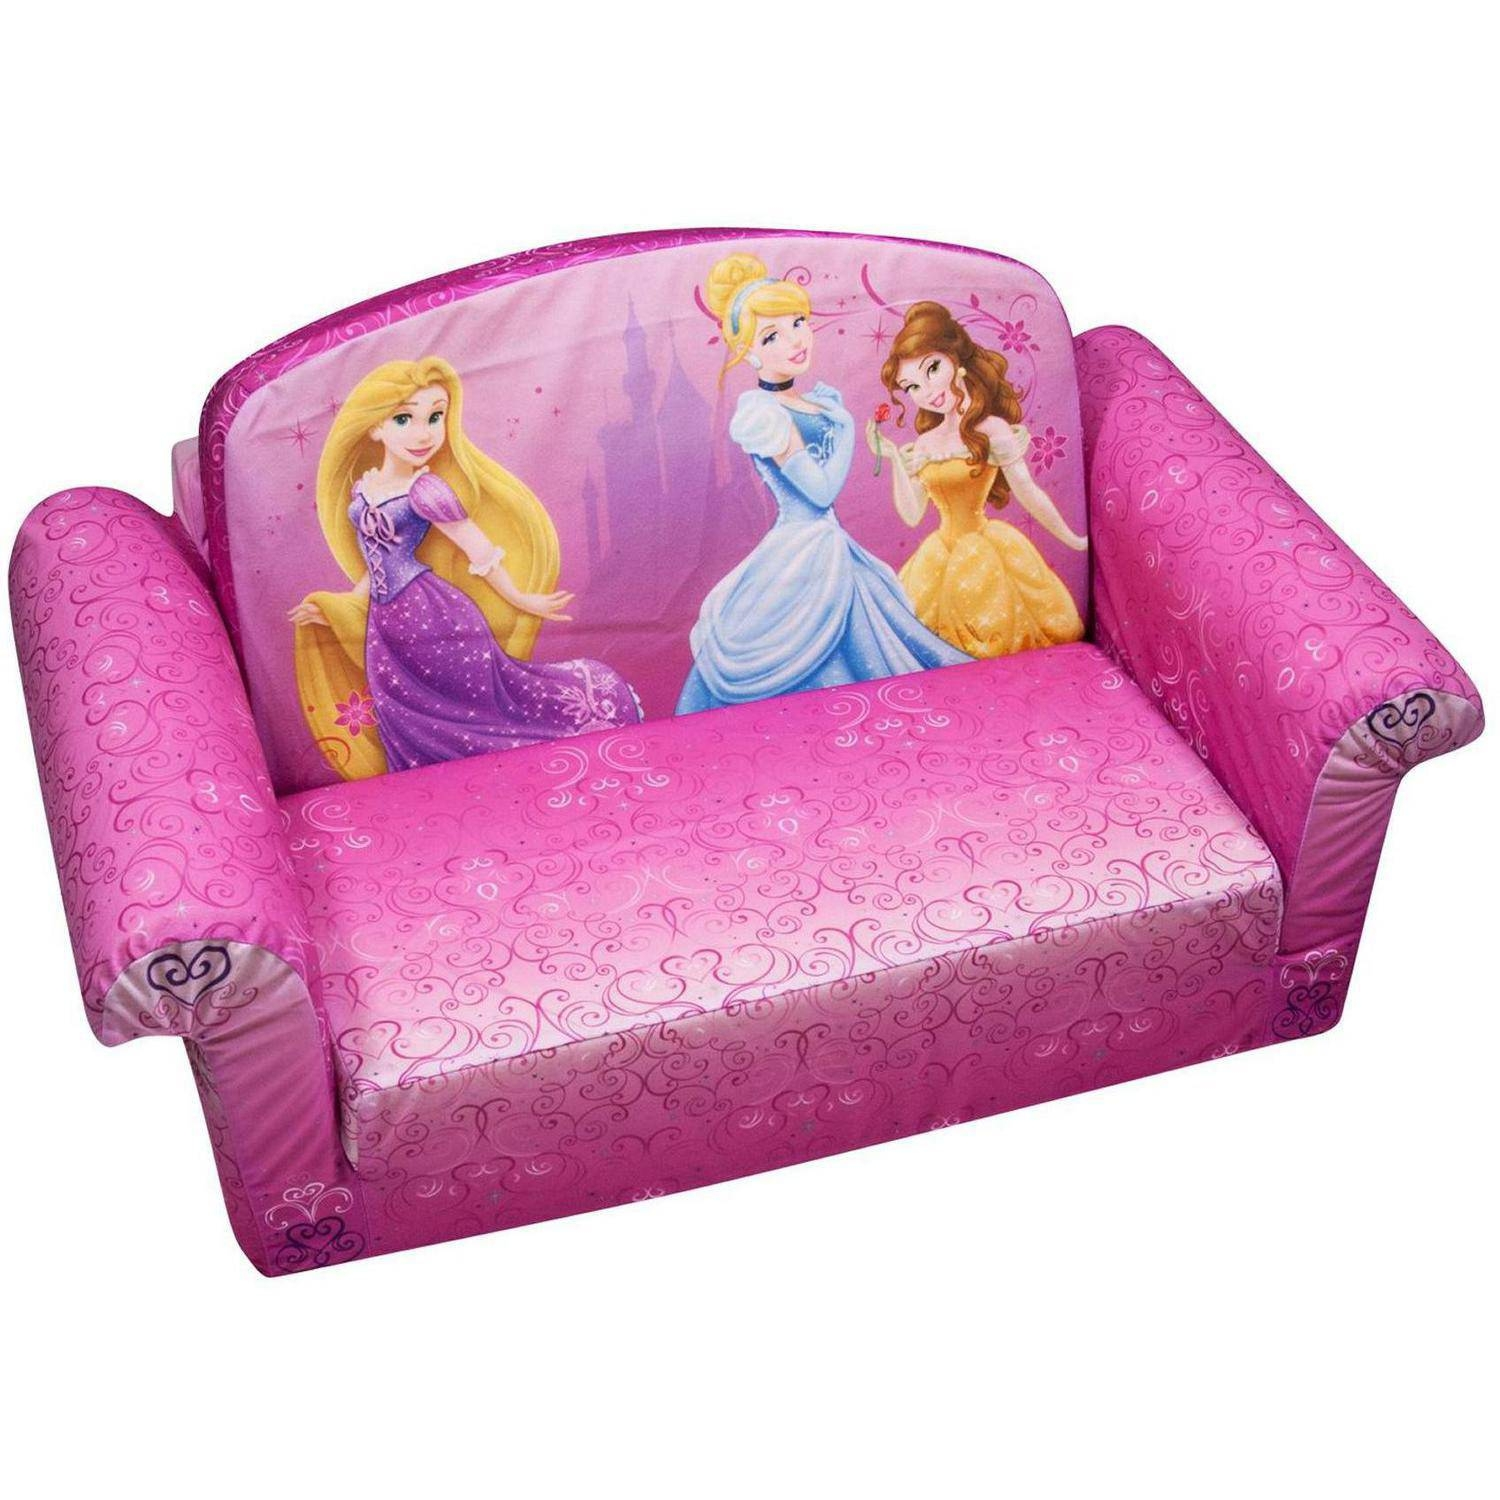 Marshmallow 2 In 1 Flip Open Sofa Disney Princess Walmart Within Disney Sofa Chairs (View 6 of 15)